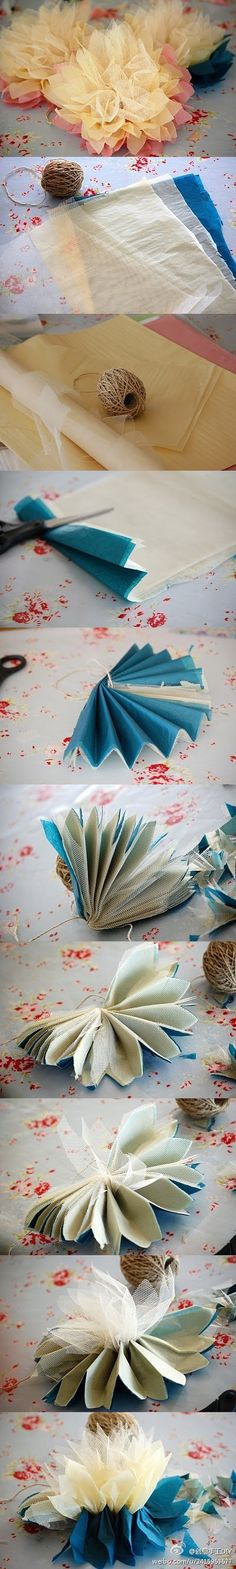 Tulle and tissue paper lotus flowers